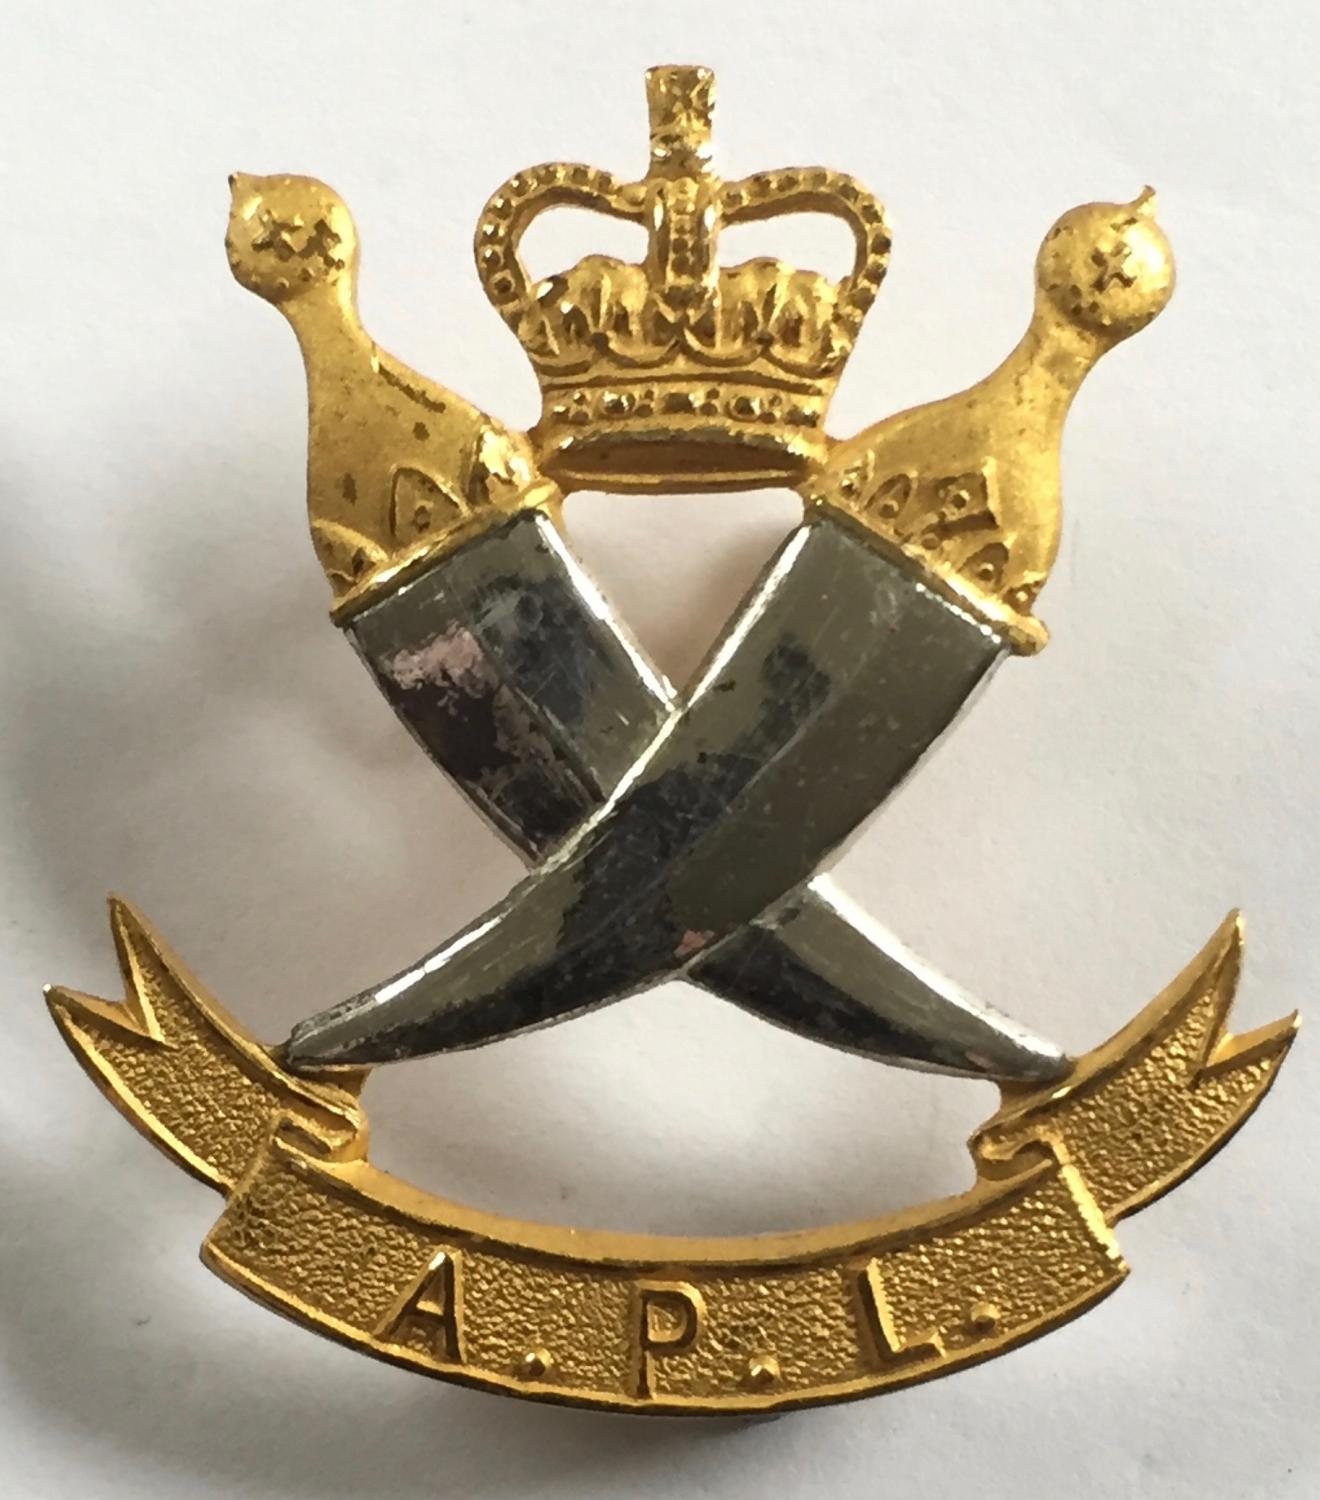 Aden Protectorate Levies Officer's badge